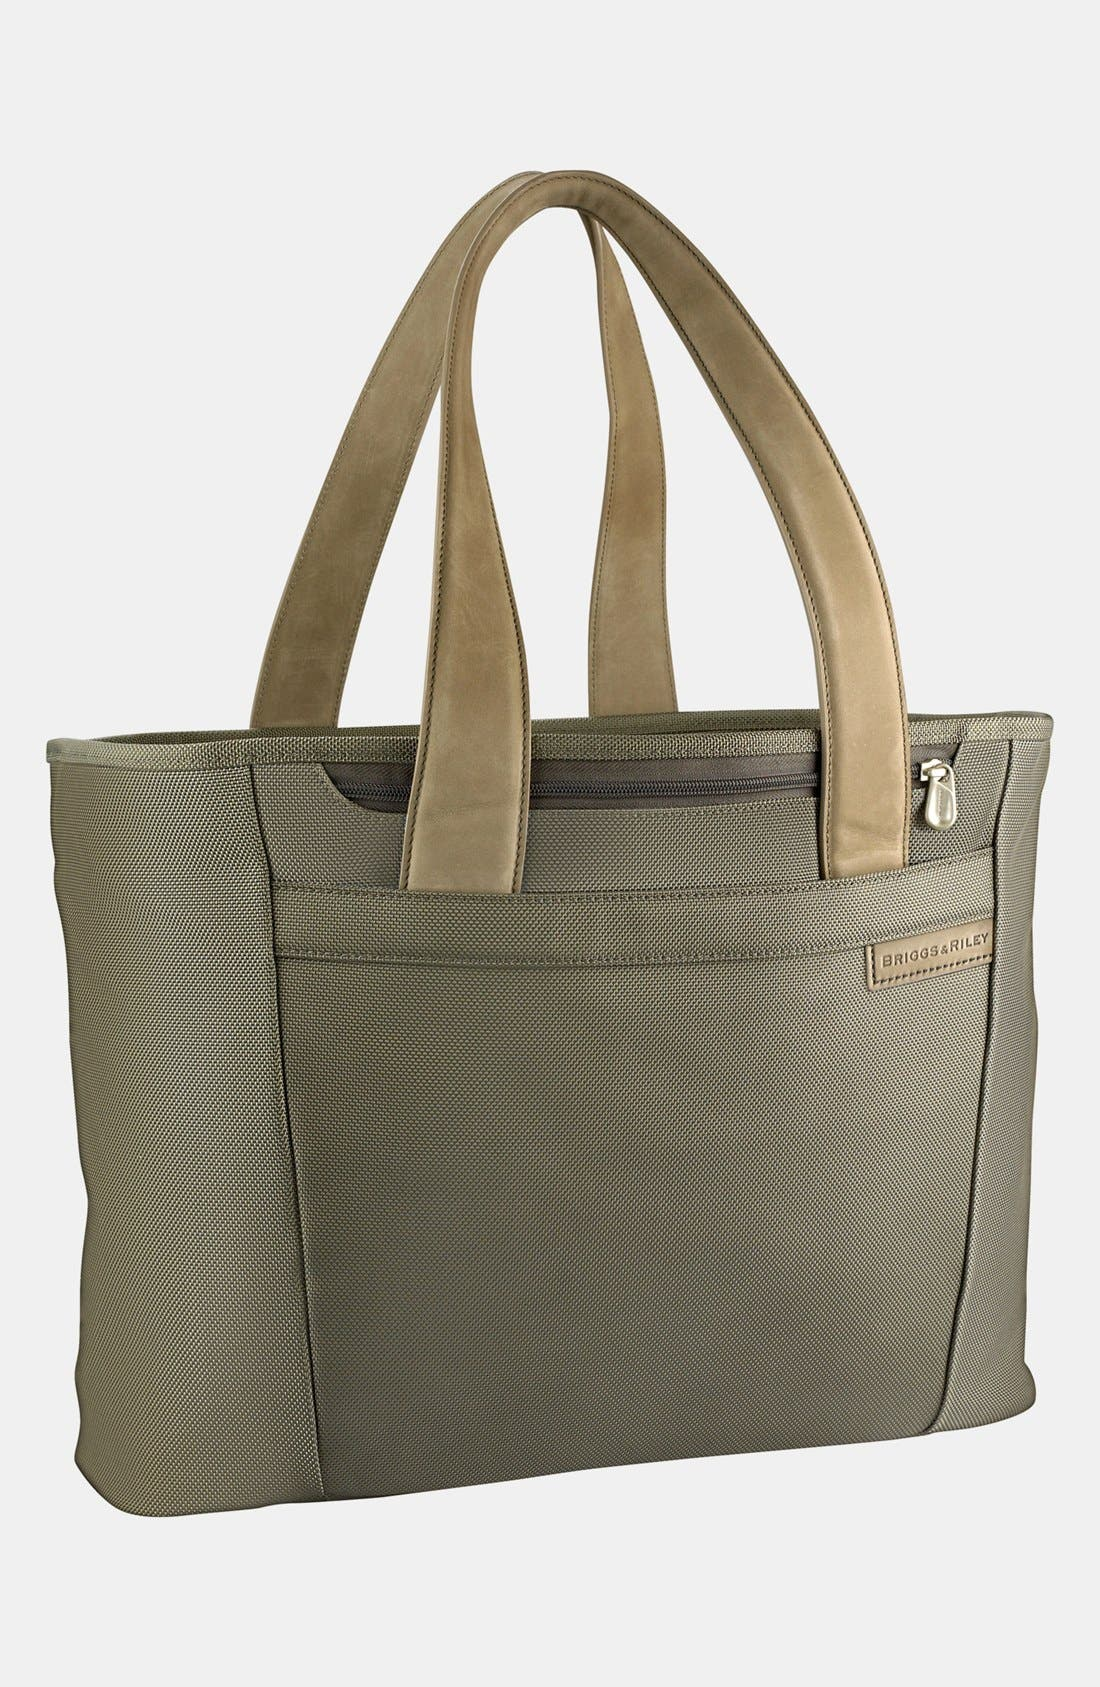 BRIGGS & RILEY Large Baseline Shopping Tote